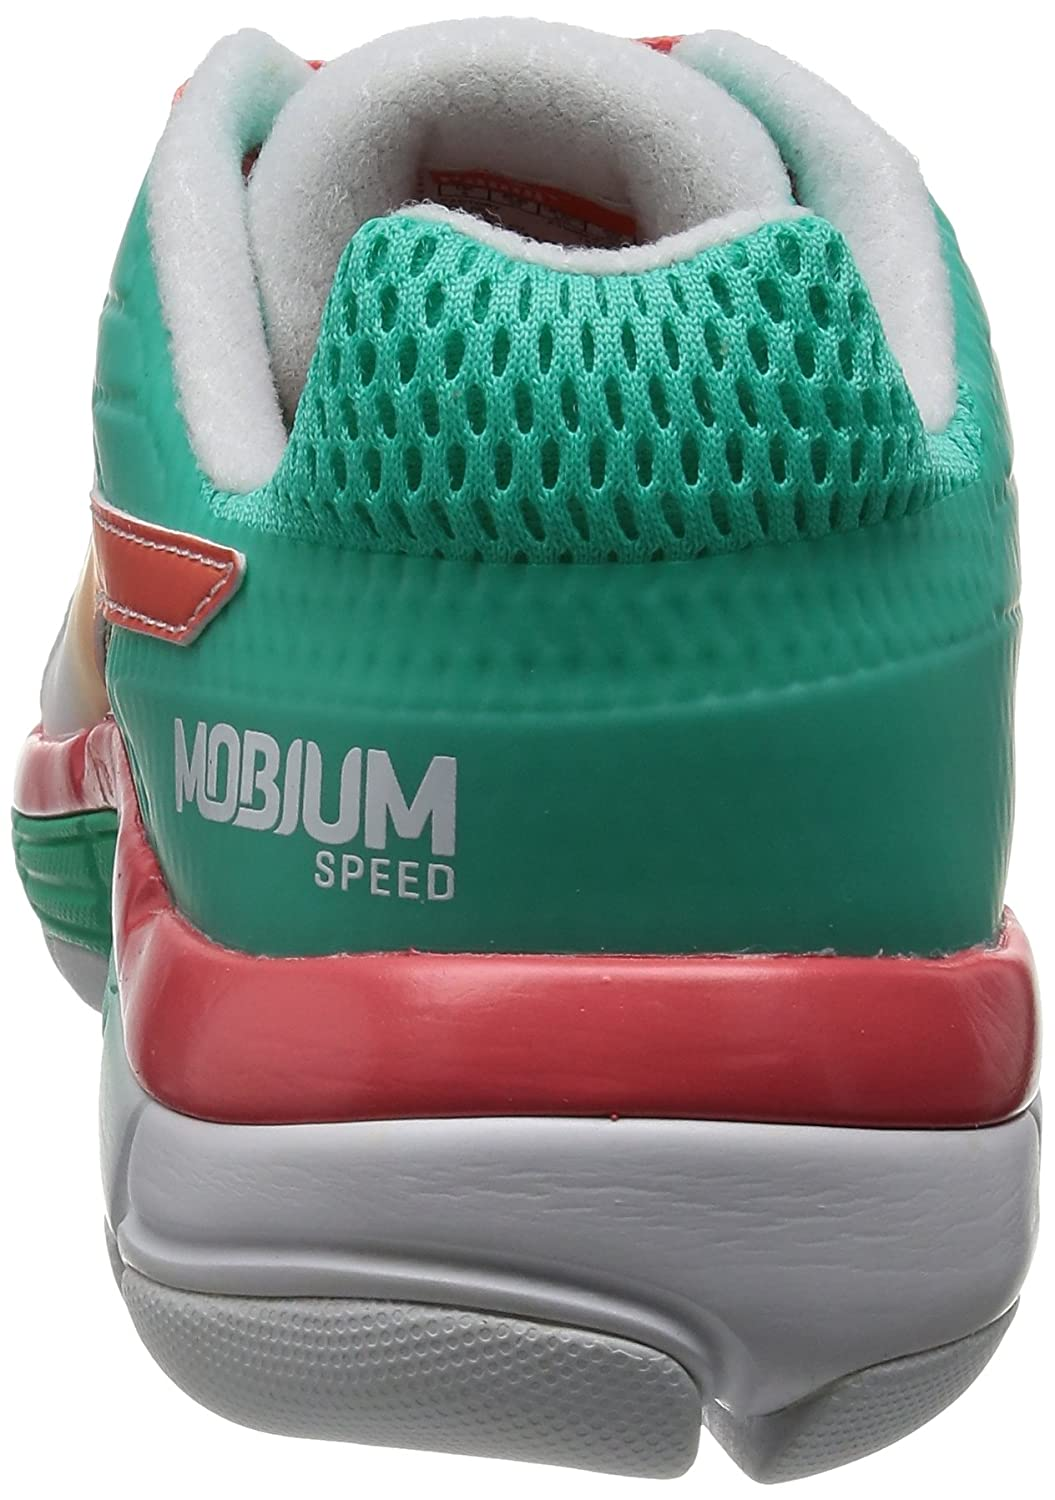 Puma Mobium Elite Speed Womens Zapatillas Para Correr